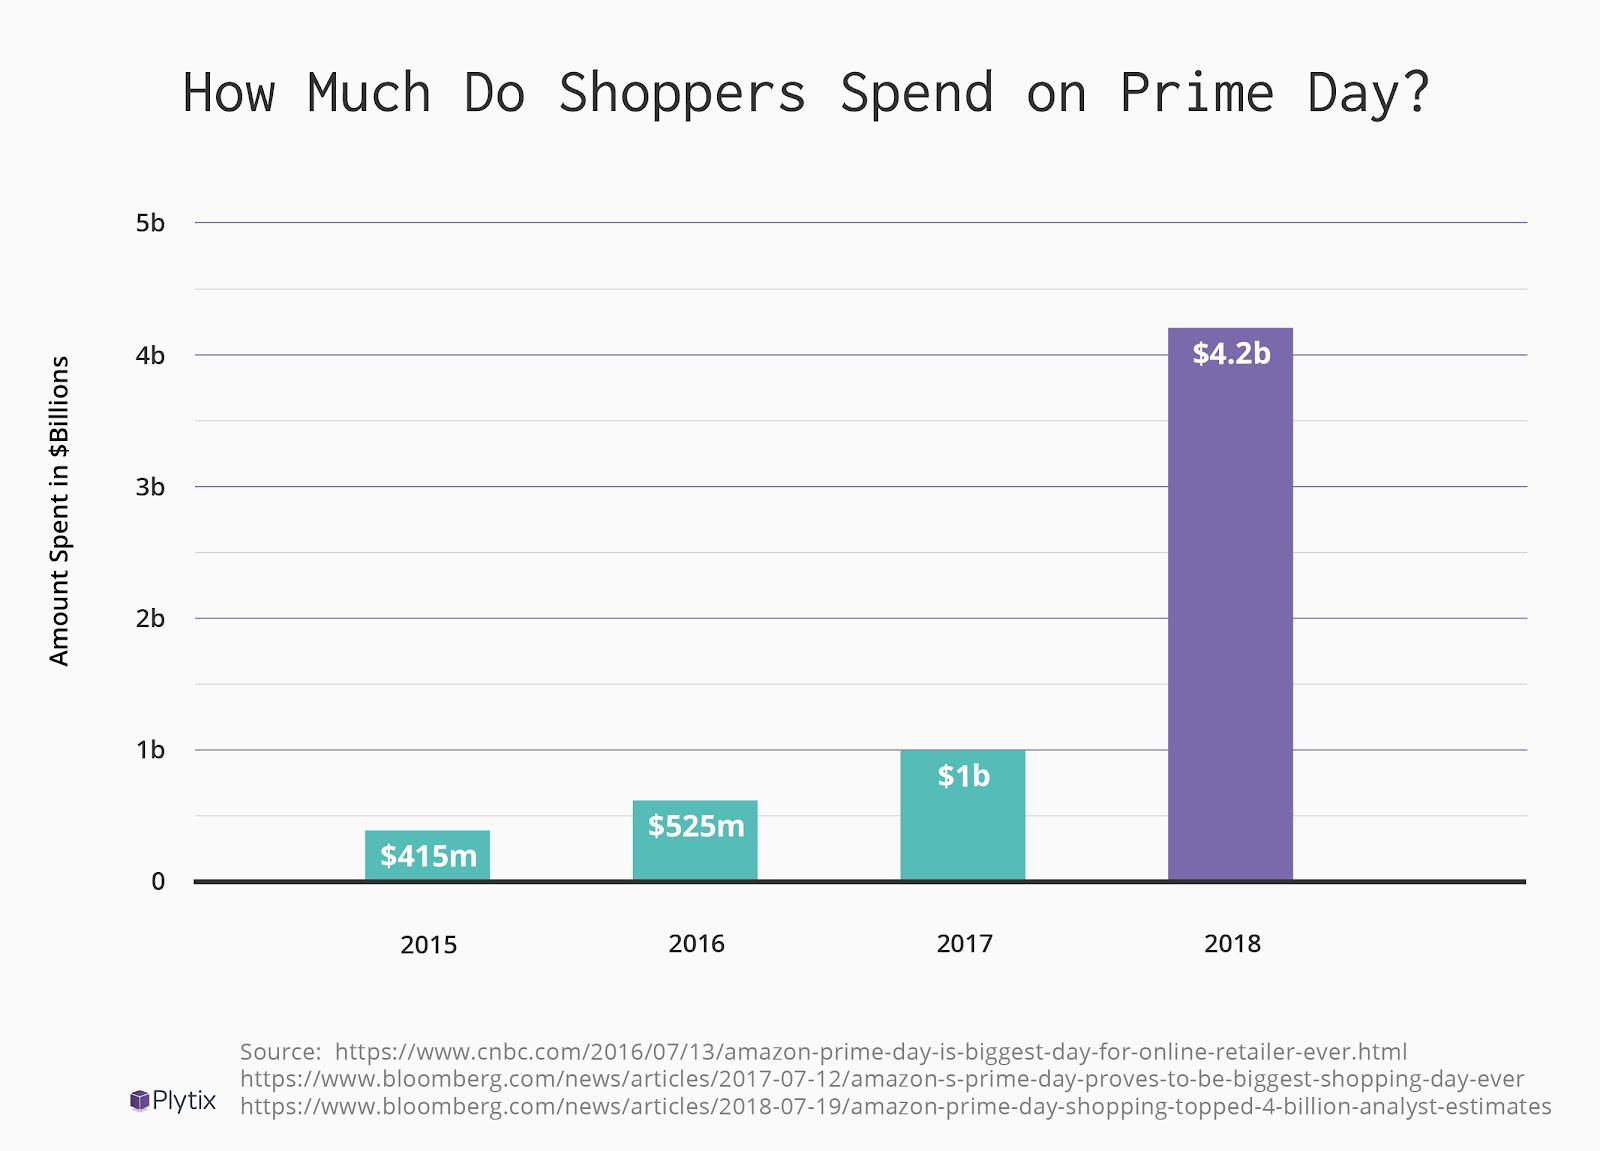 How Much Do Shoppers Spend on Prime Day?